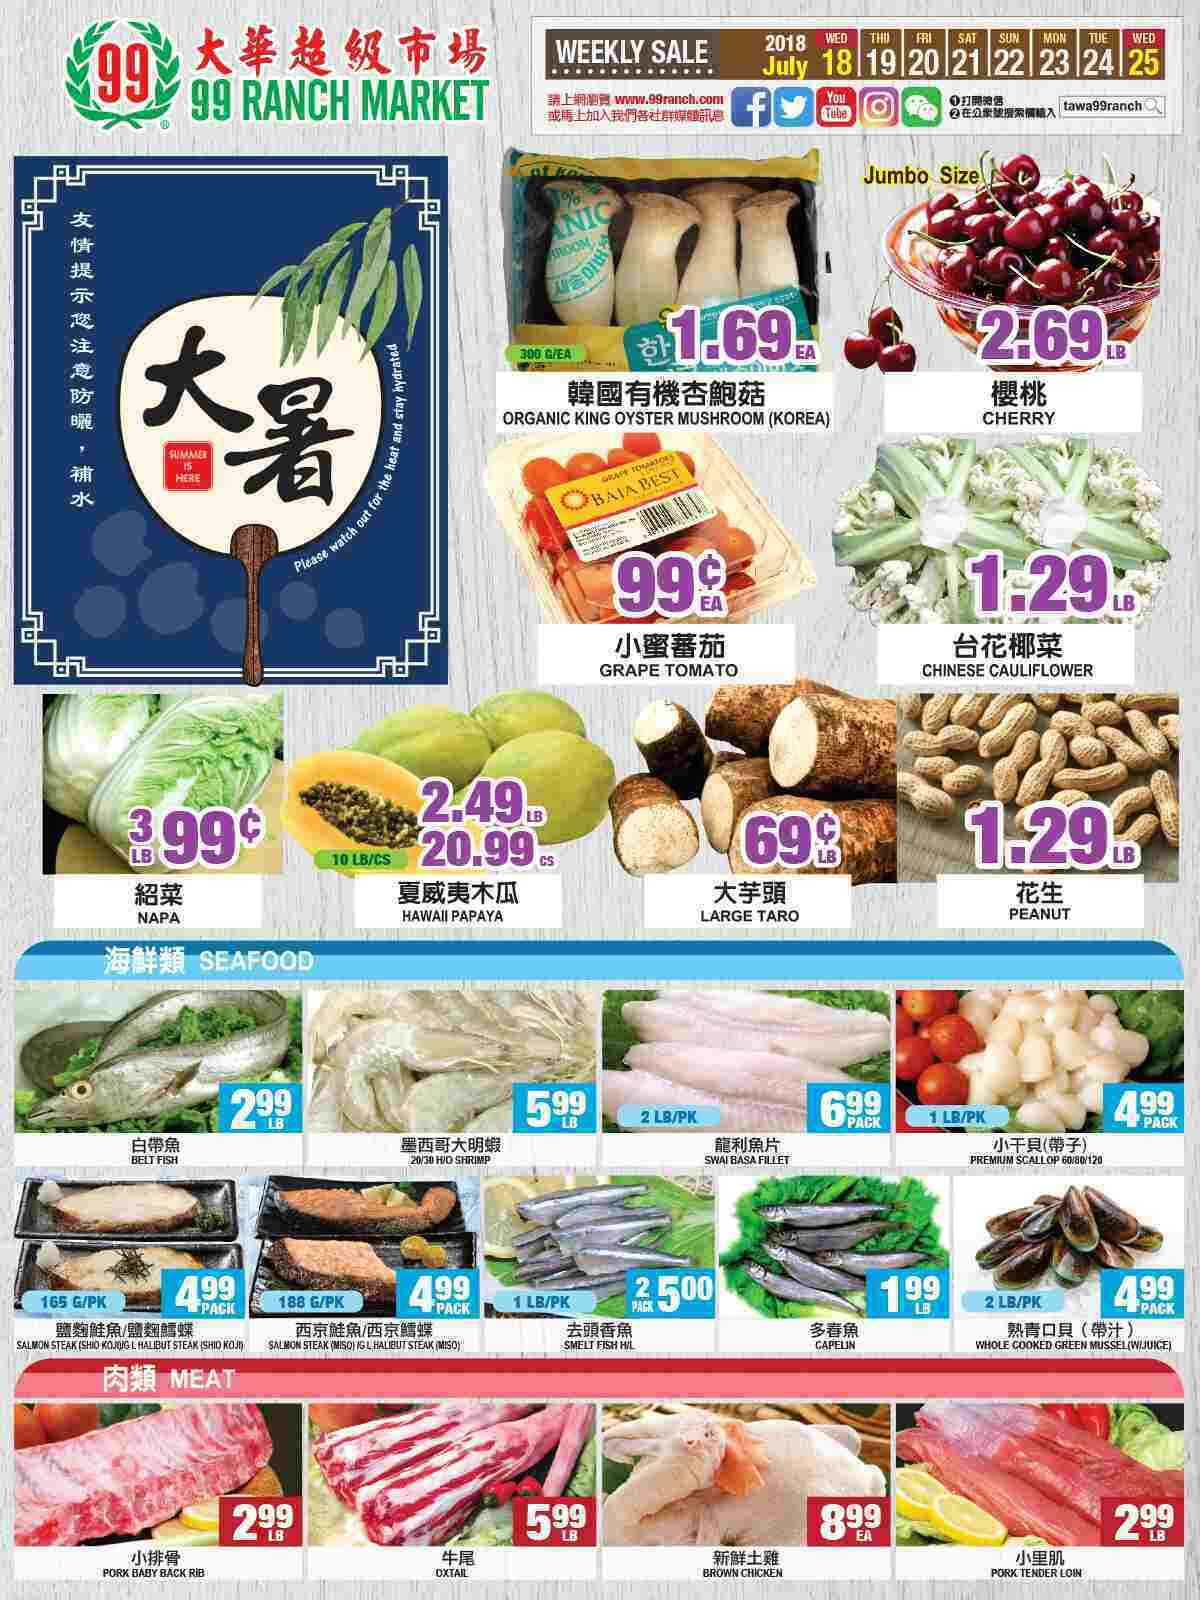 offers ranch market 18-7-2018